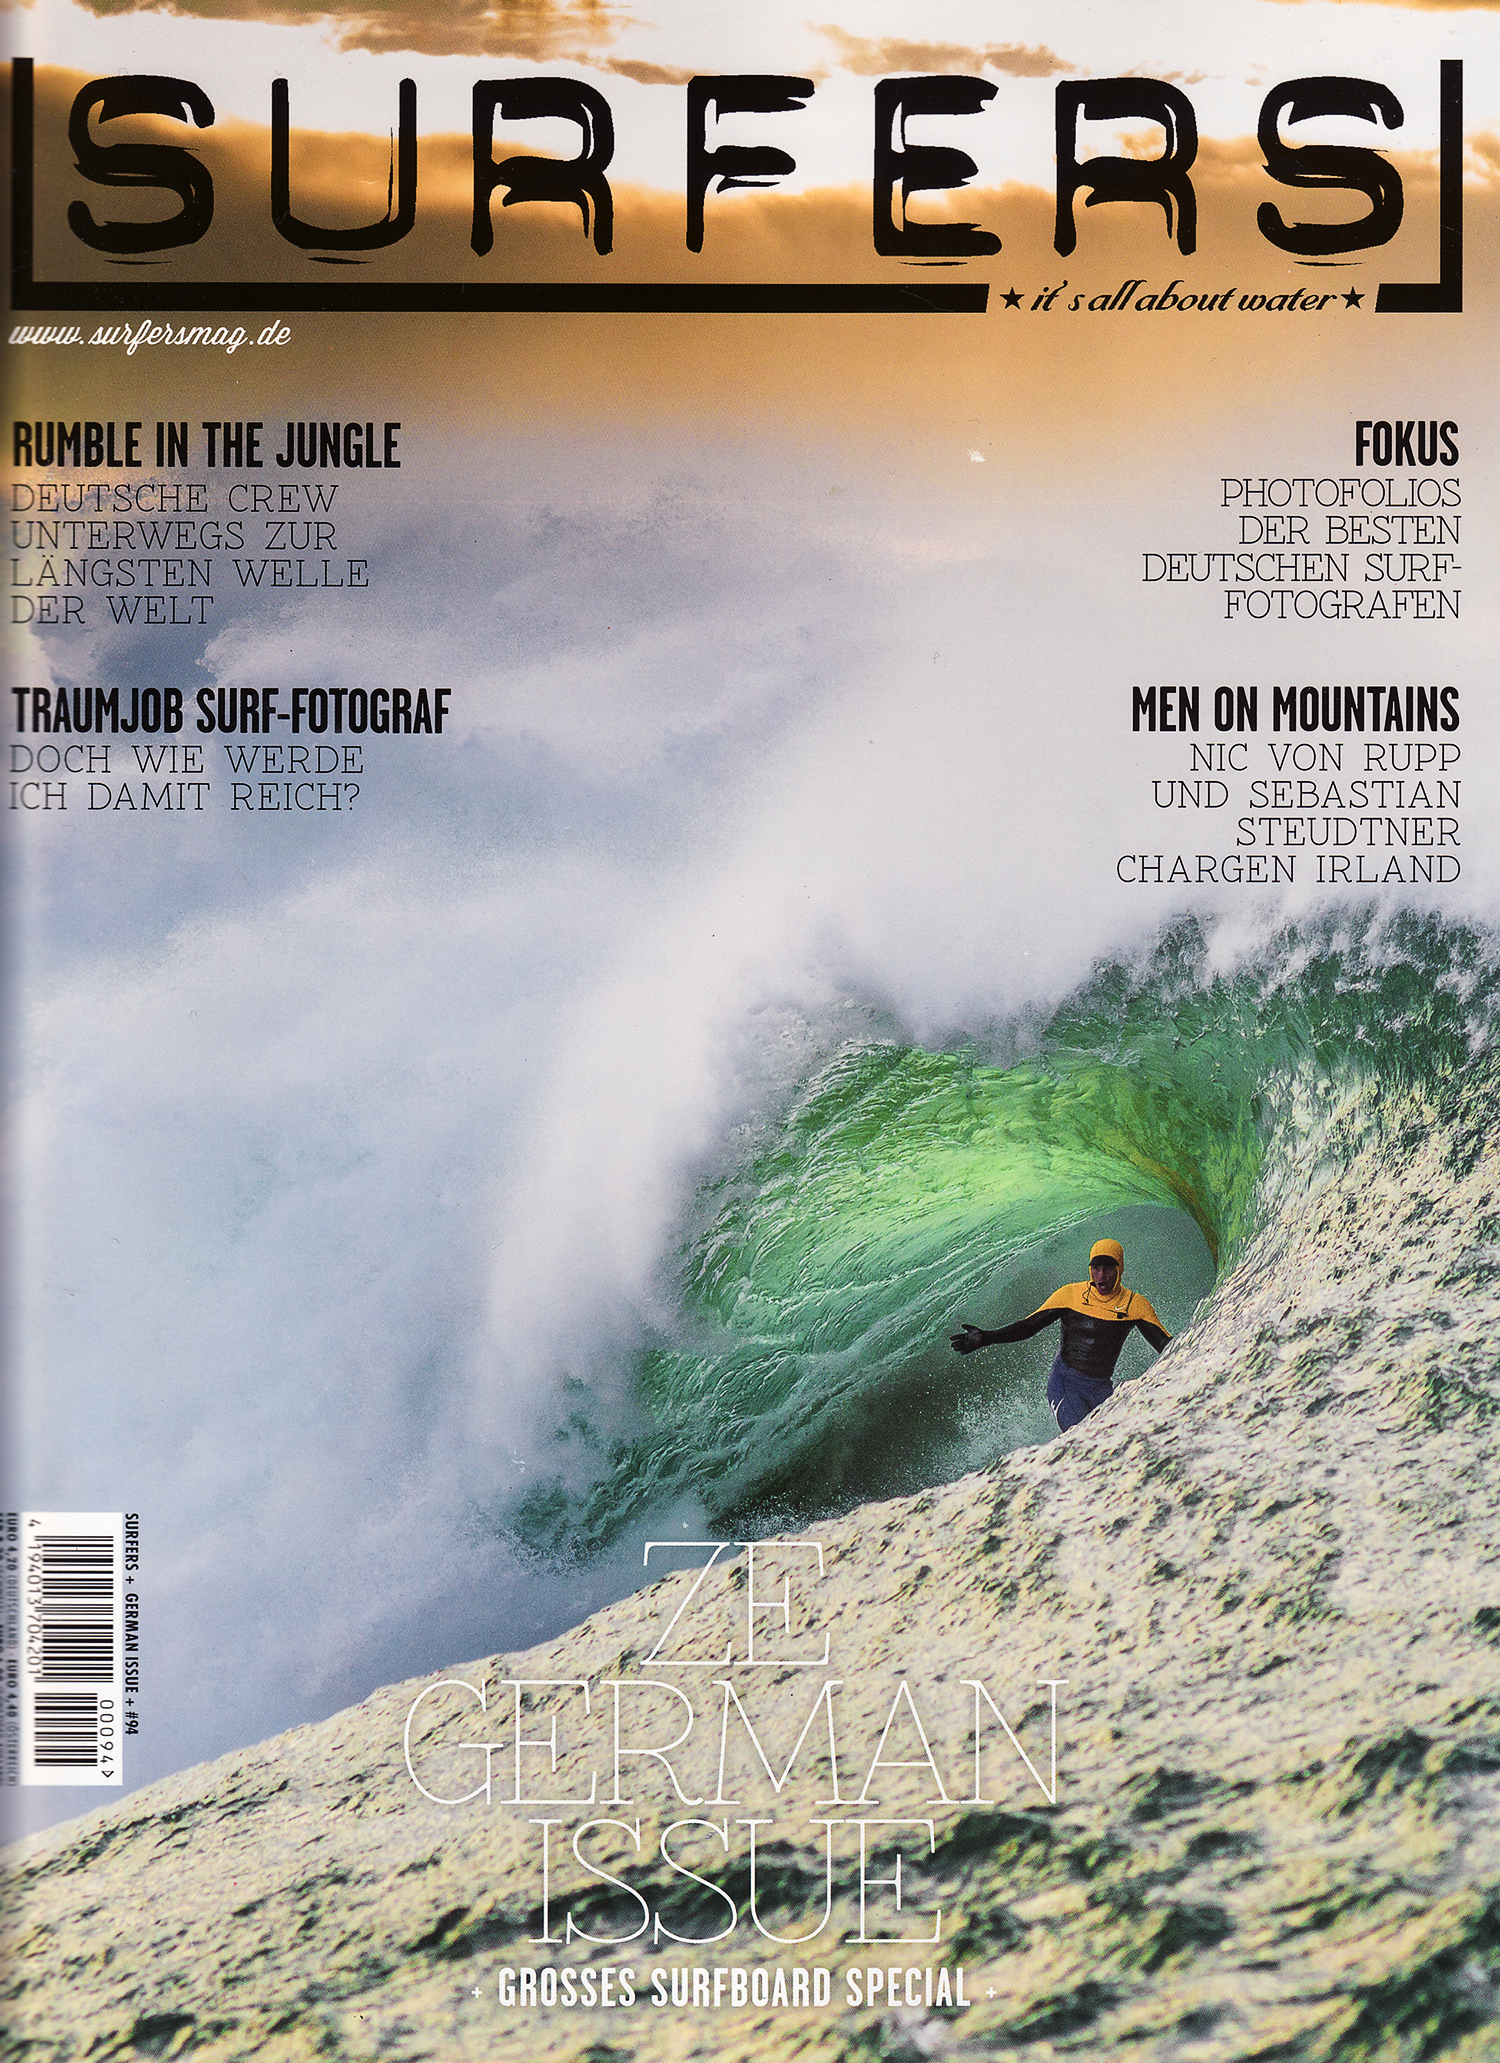 2013-05_Surfers-Cover_A4-300dpi.jpg